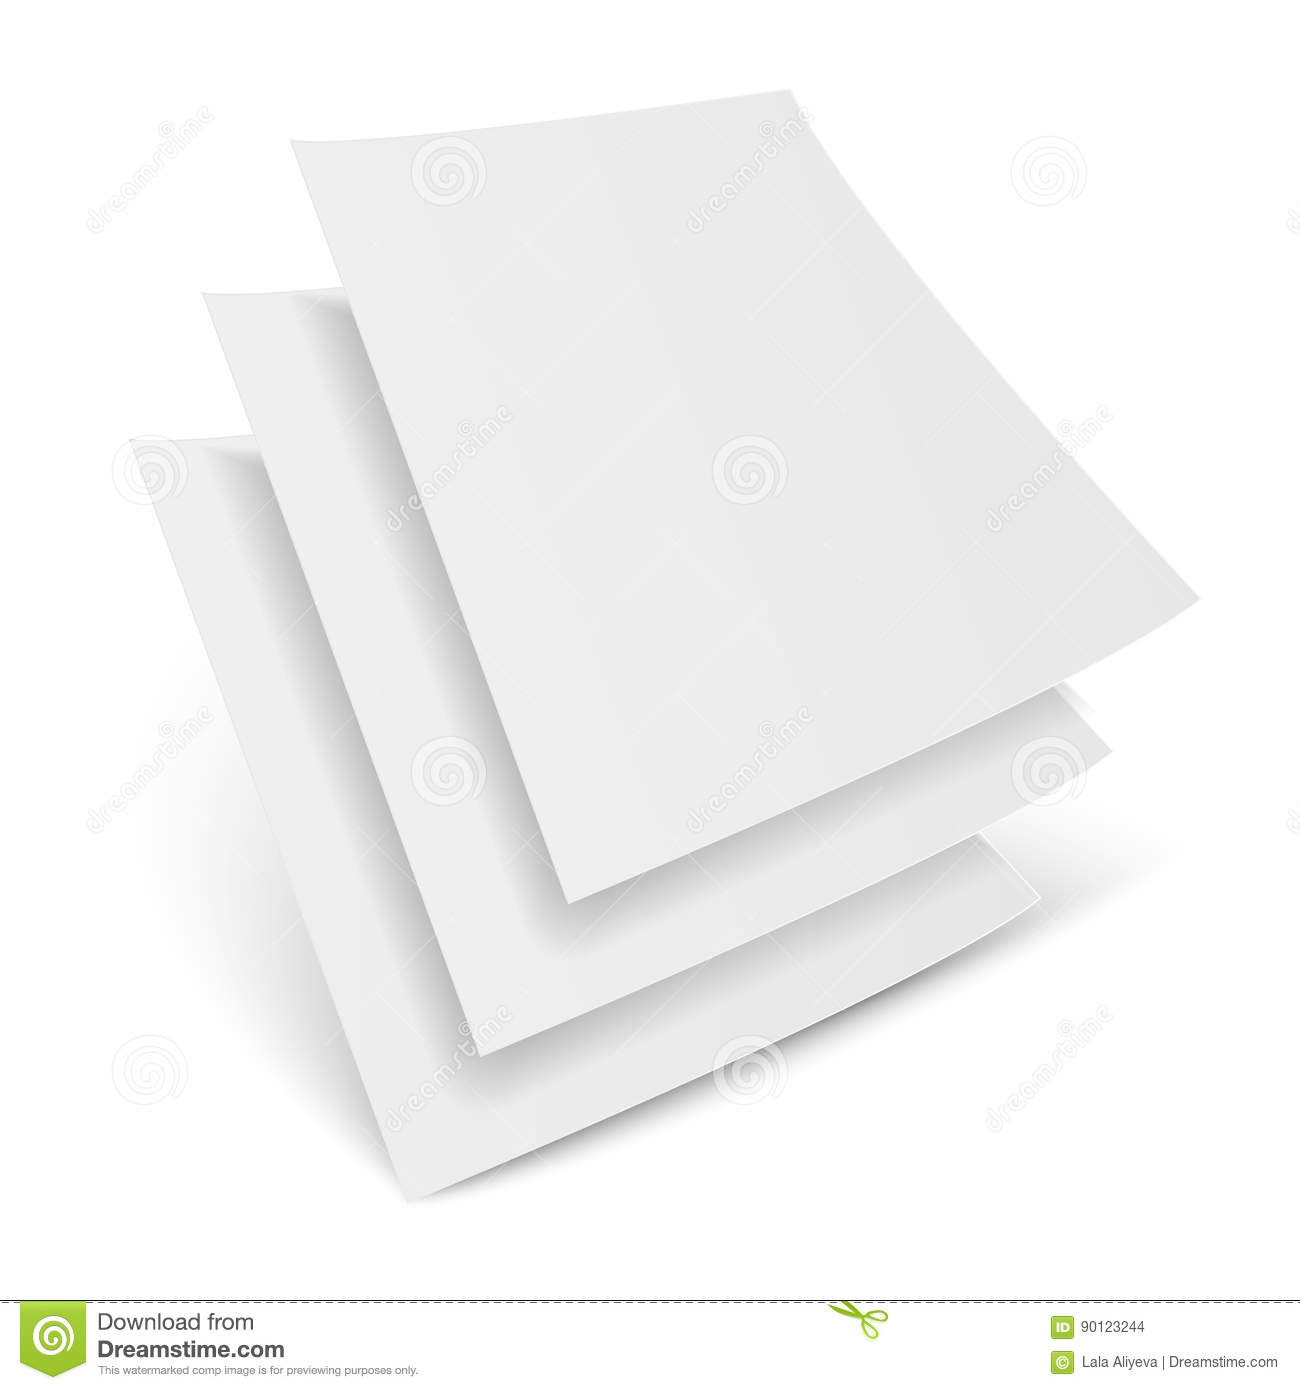 Three Blank Paper Leaflet, Flyer, Broadsheet, Flier, Follicle. Mock Up Template Ready For Your Design. Vector